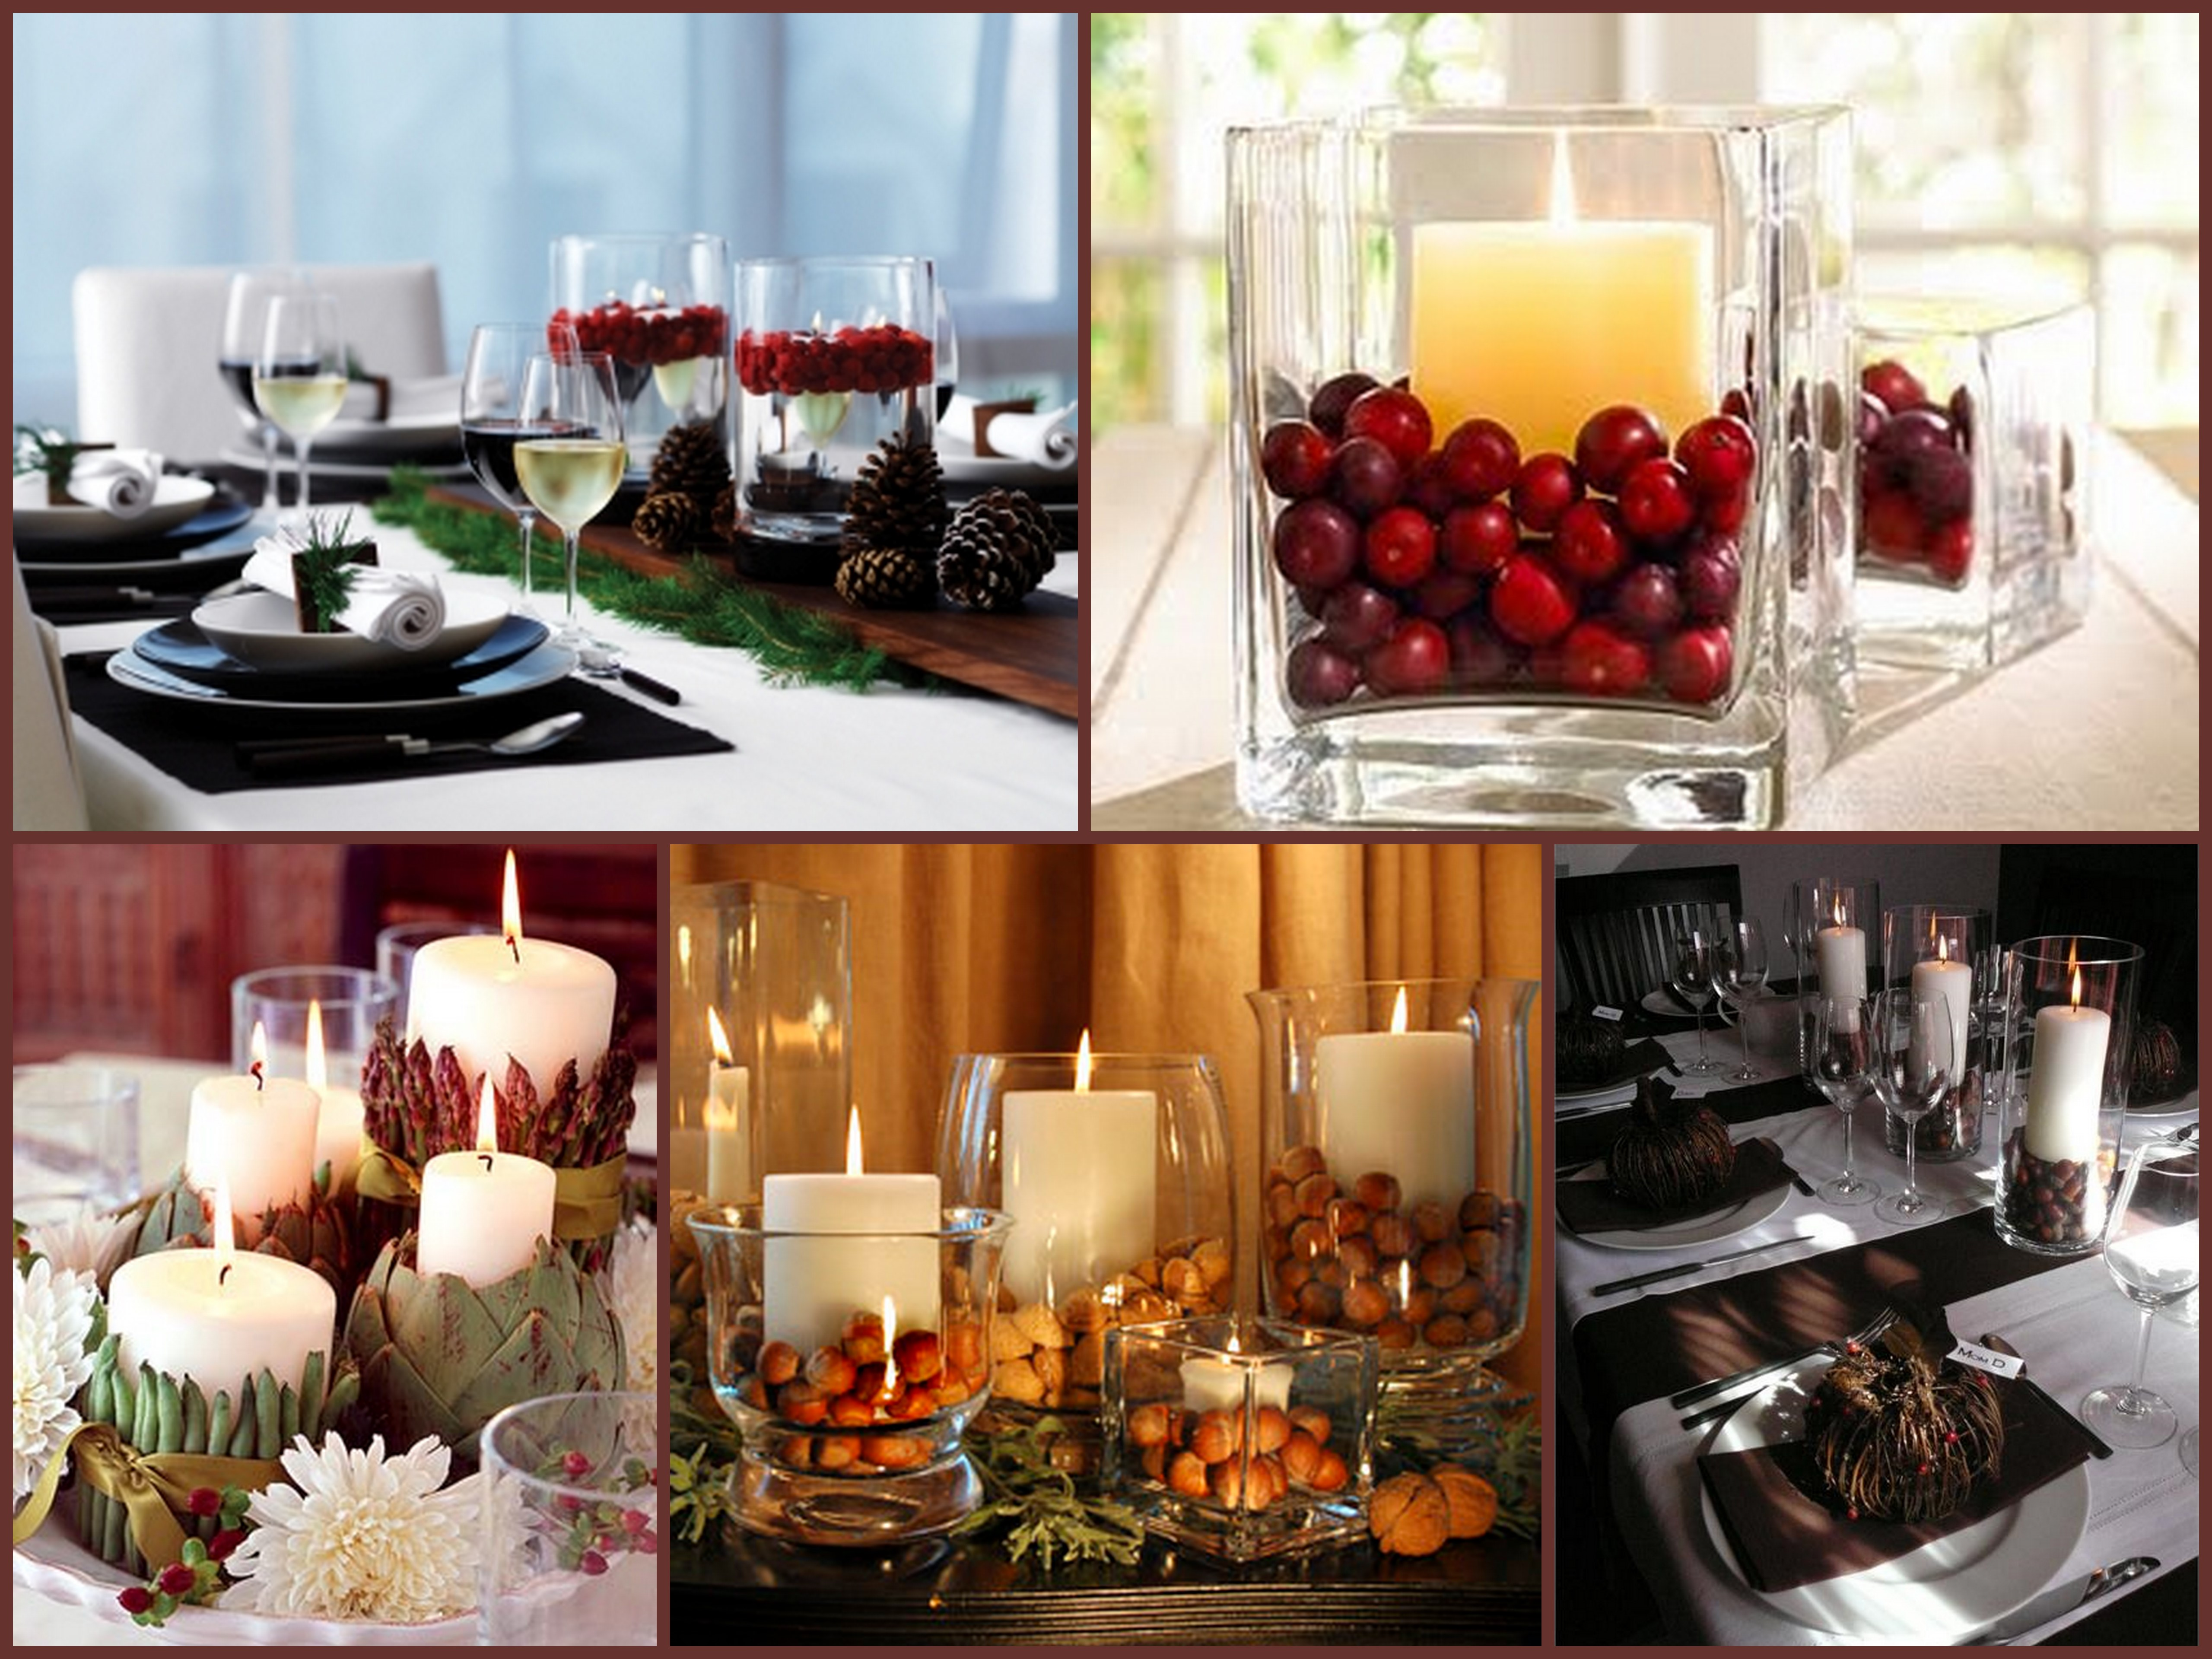 Diy thanksgiving decor pinterest - Thanksgiving Decor Vase Cranberries